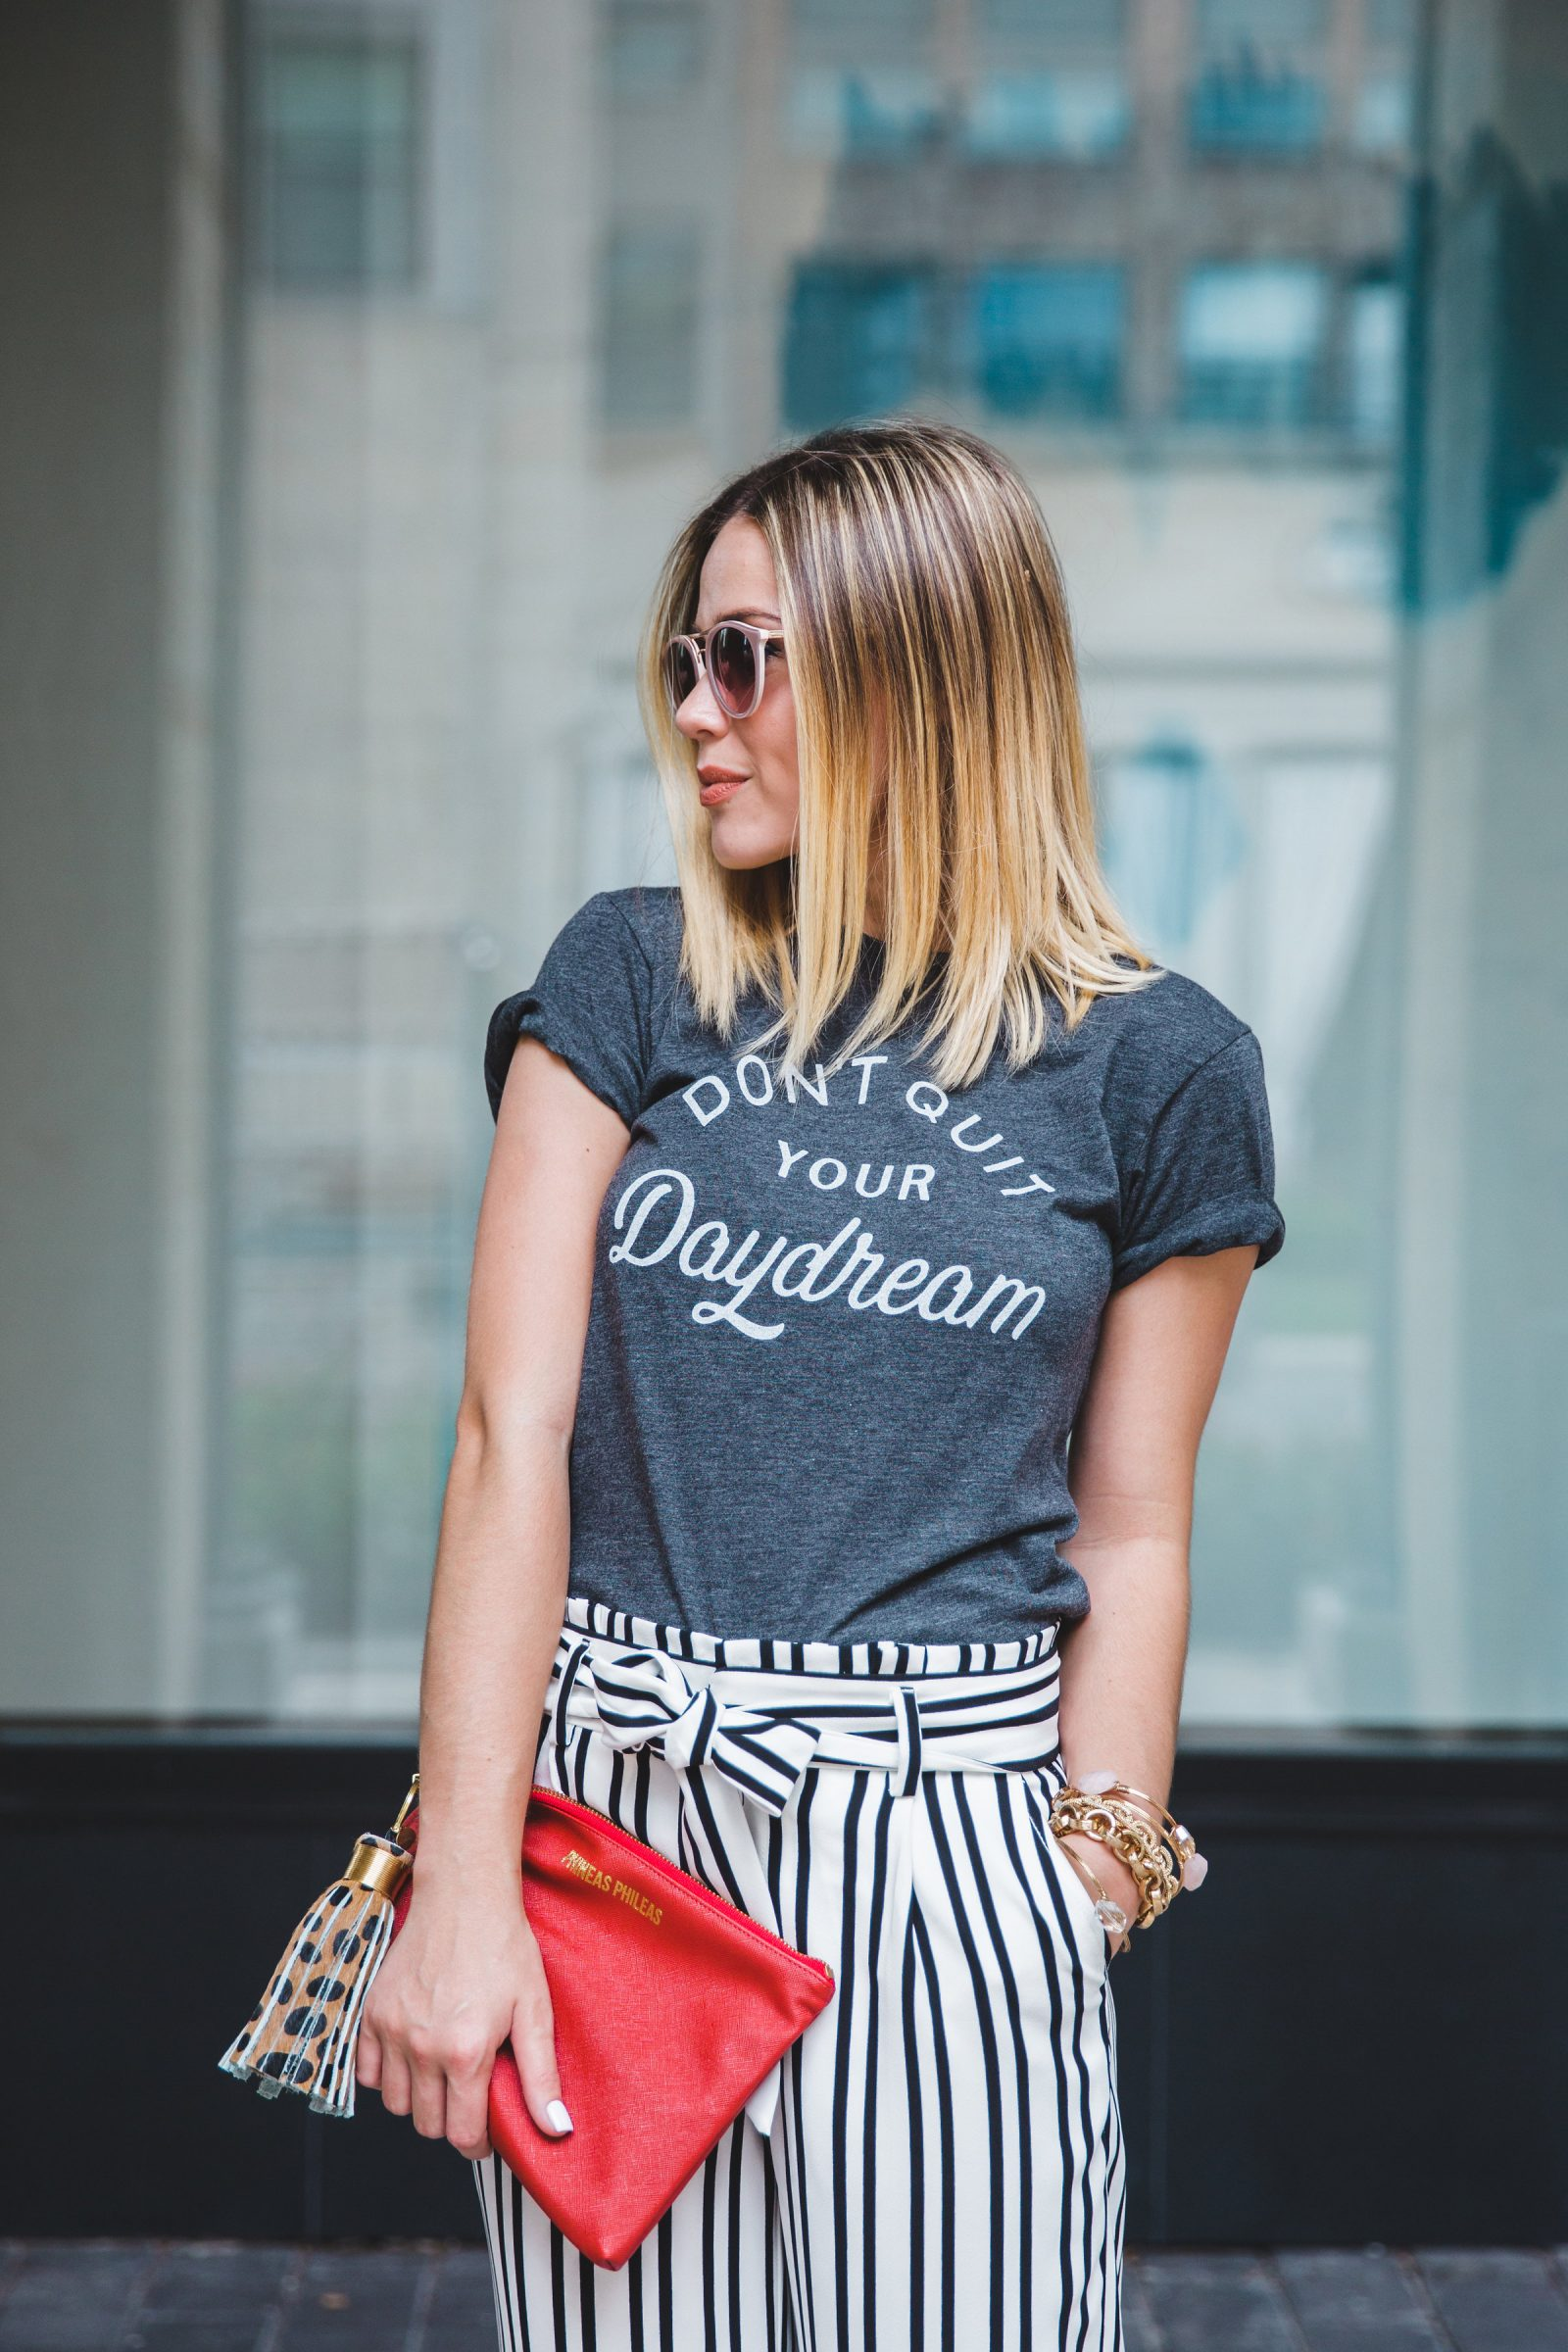 Houston blogger Elly Brown breaks down her tips on how to start a blog + a business casual look to help motivate you to just do it!